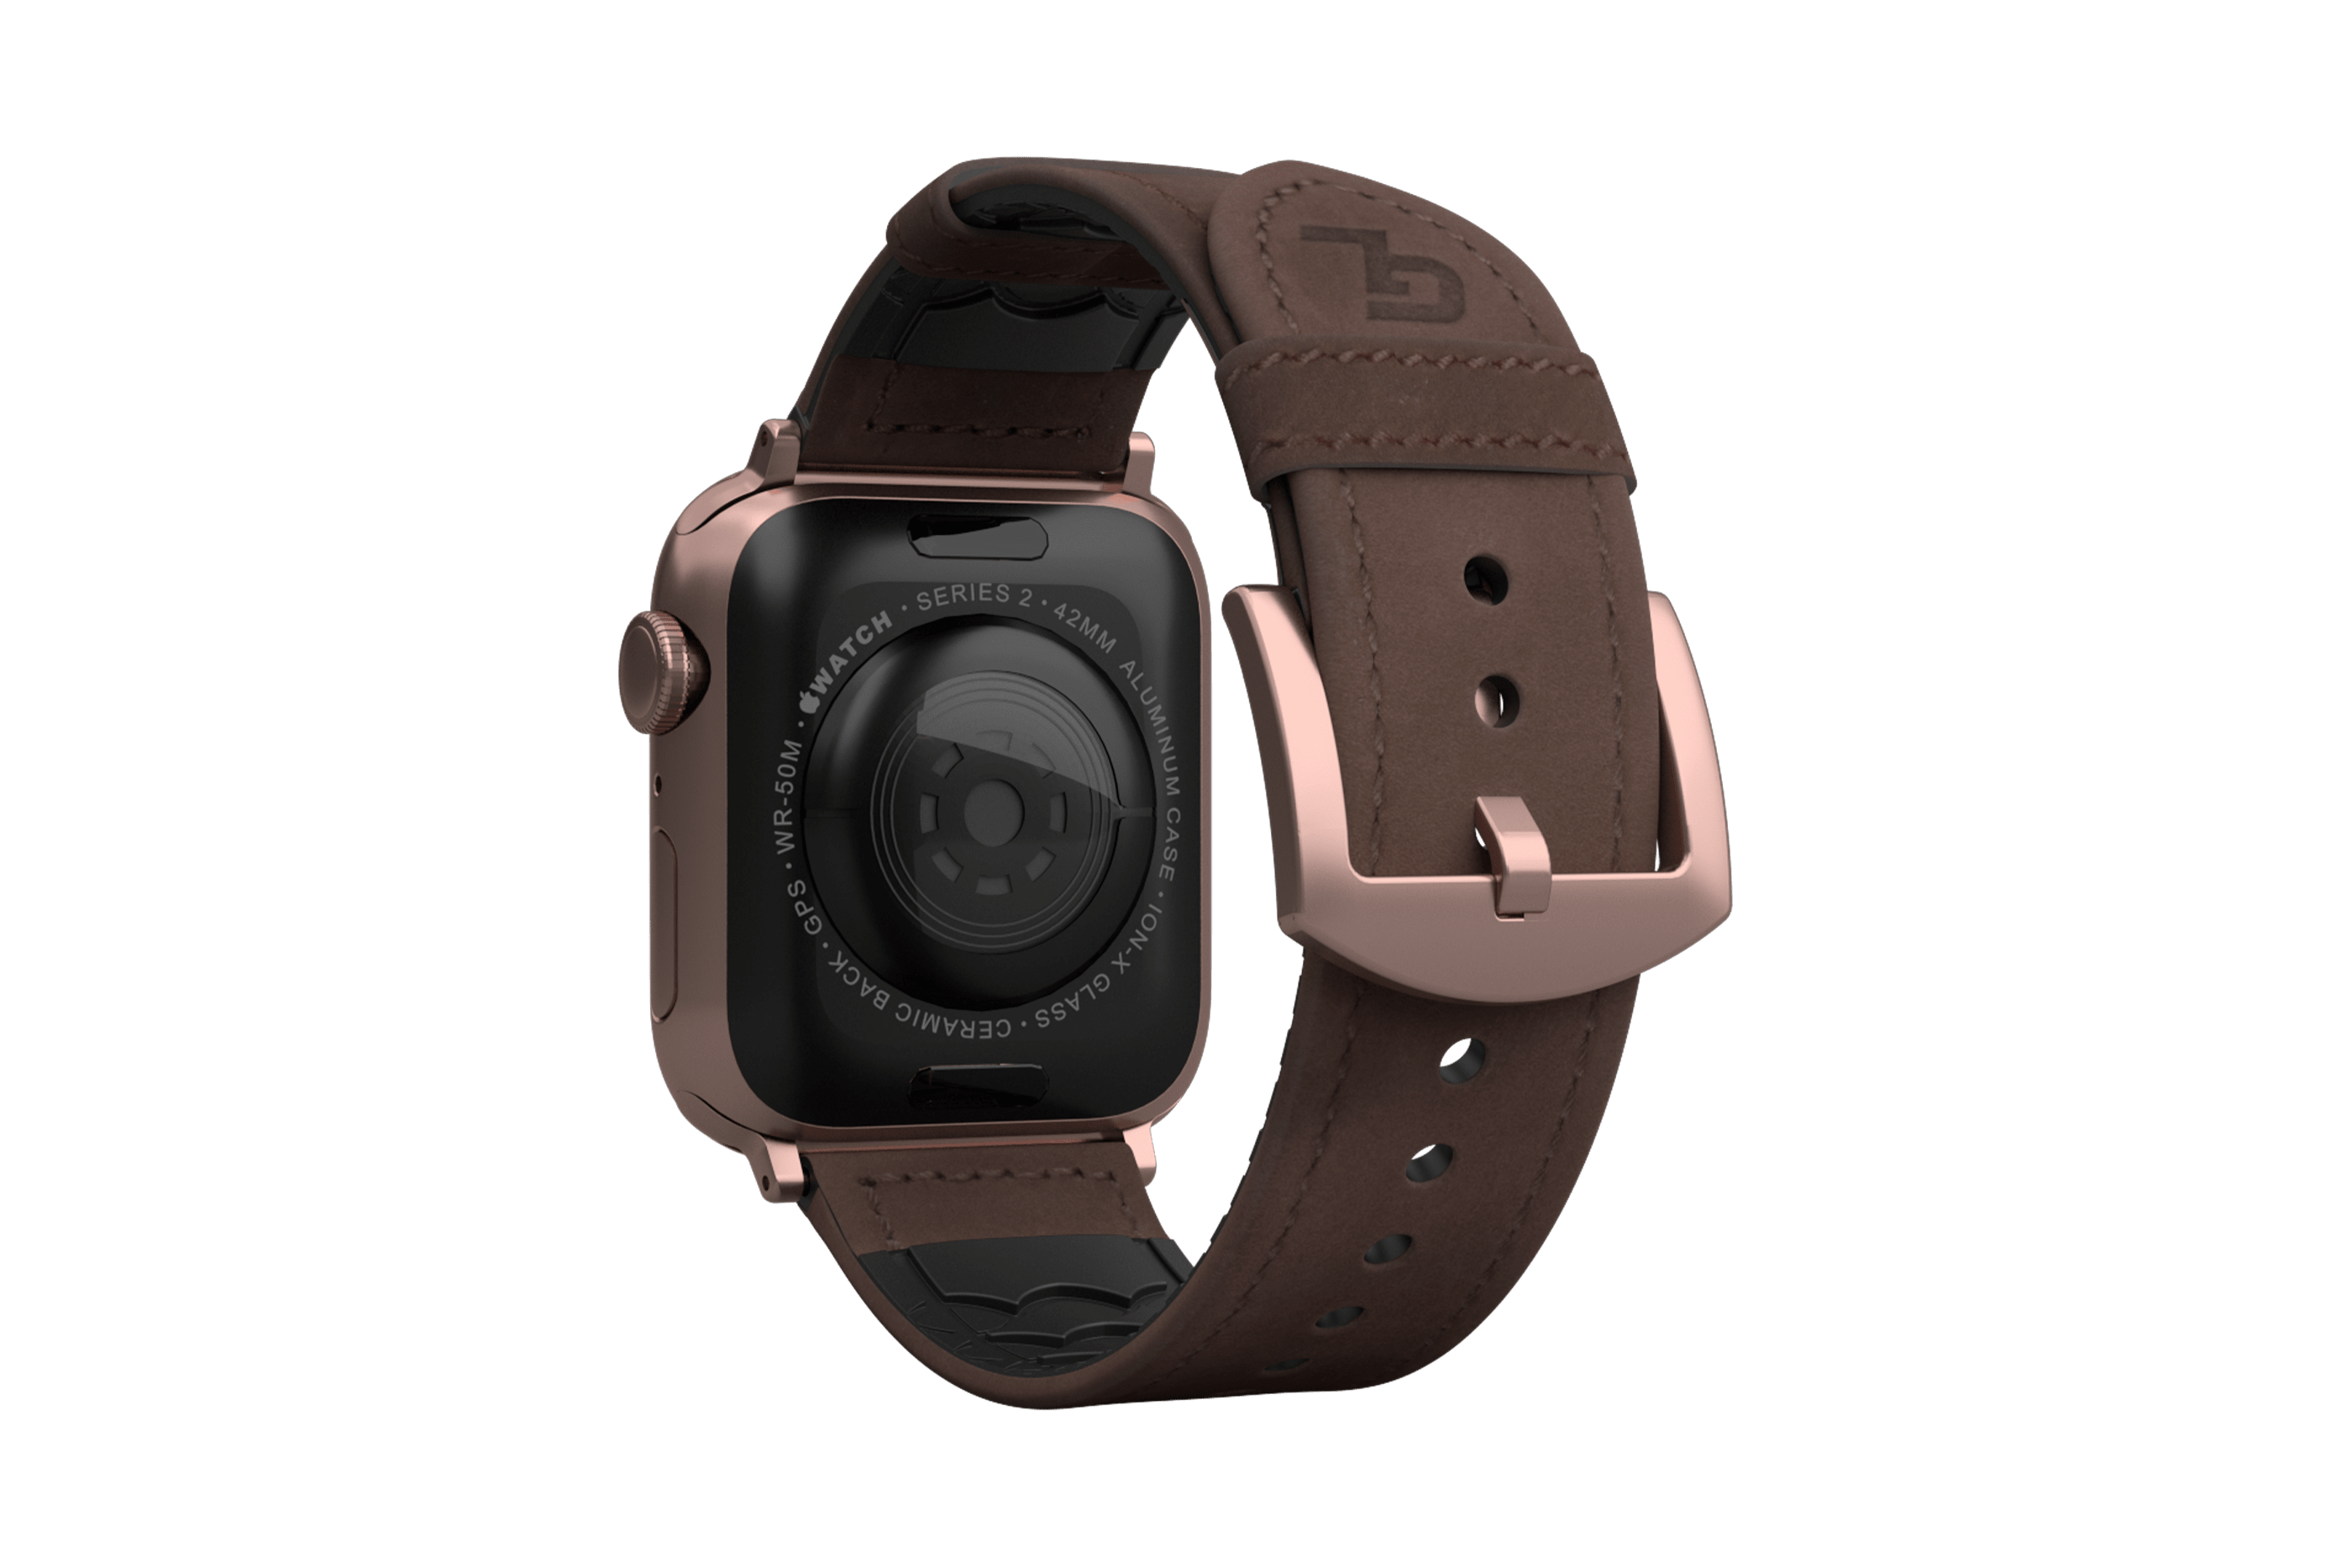 Vulcan Ascent Leather apple watch band with rose gold hardware viewed from top down